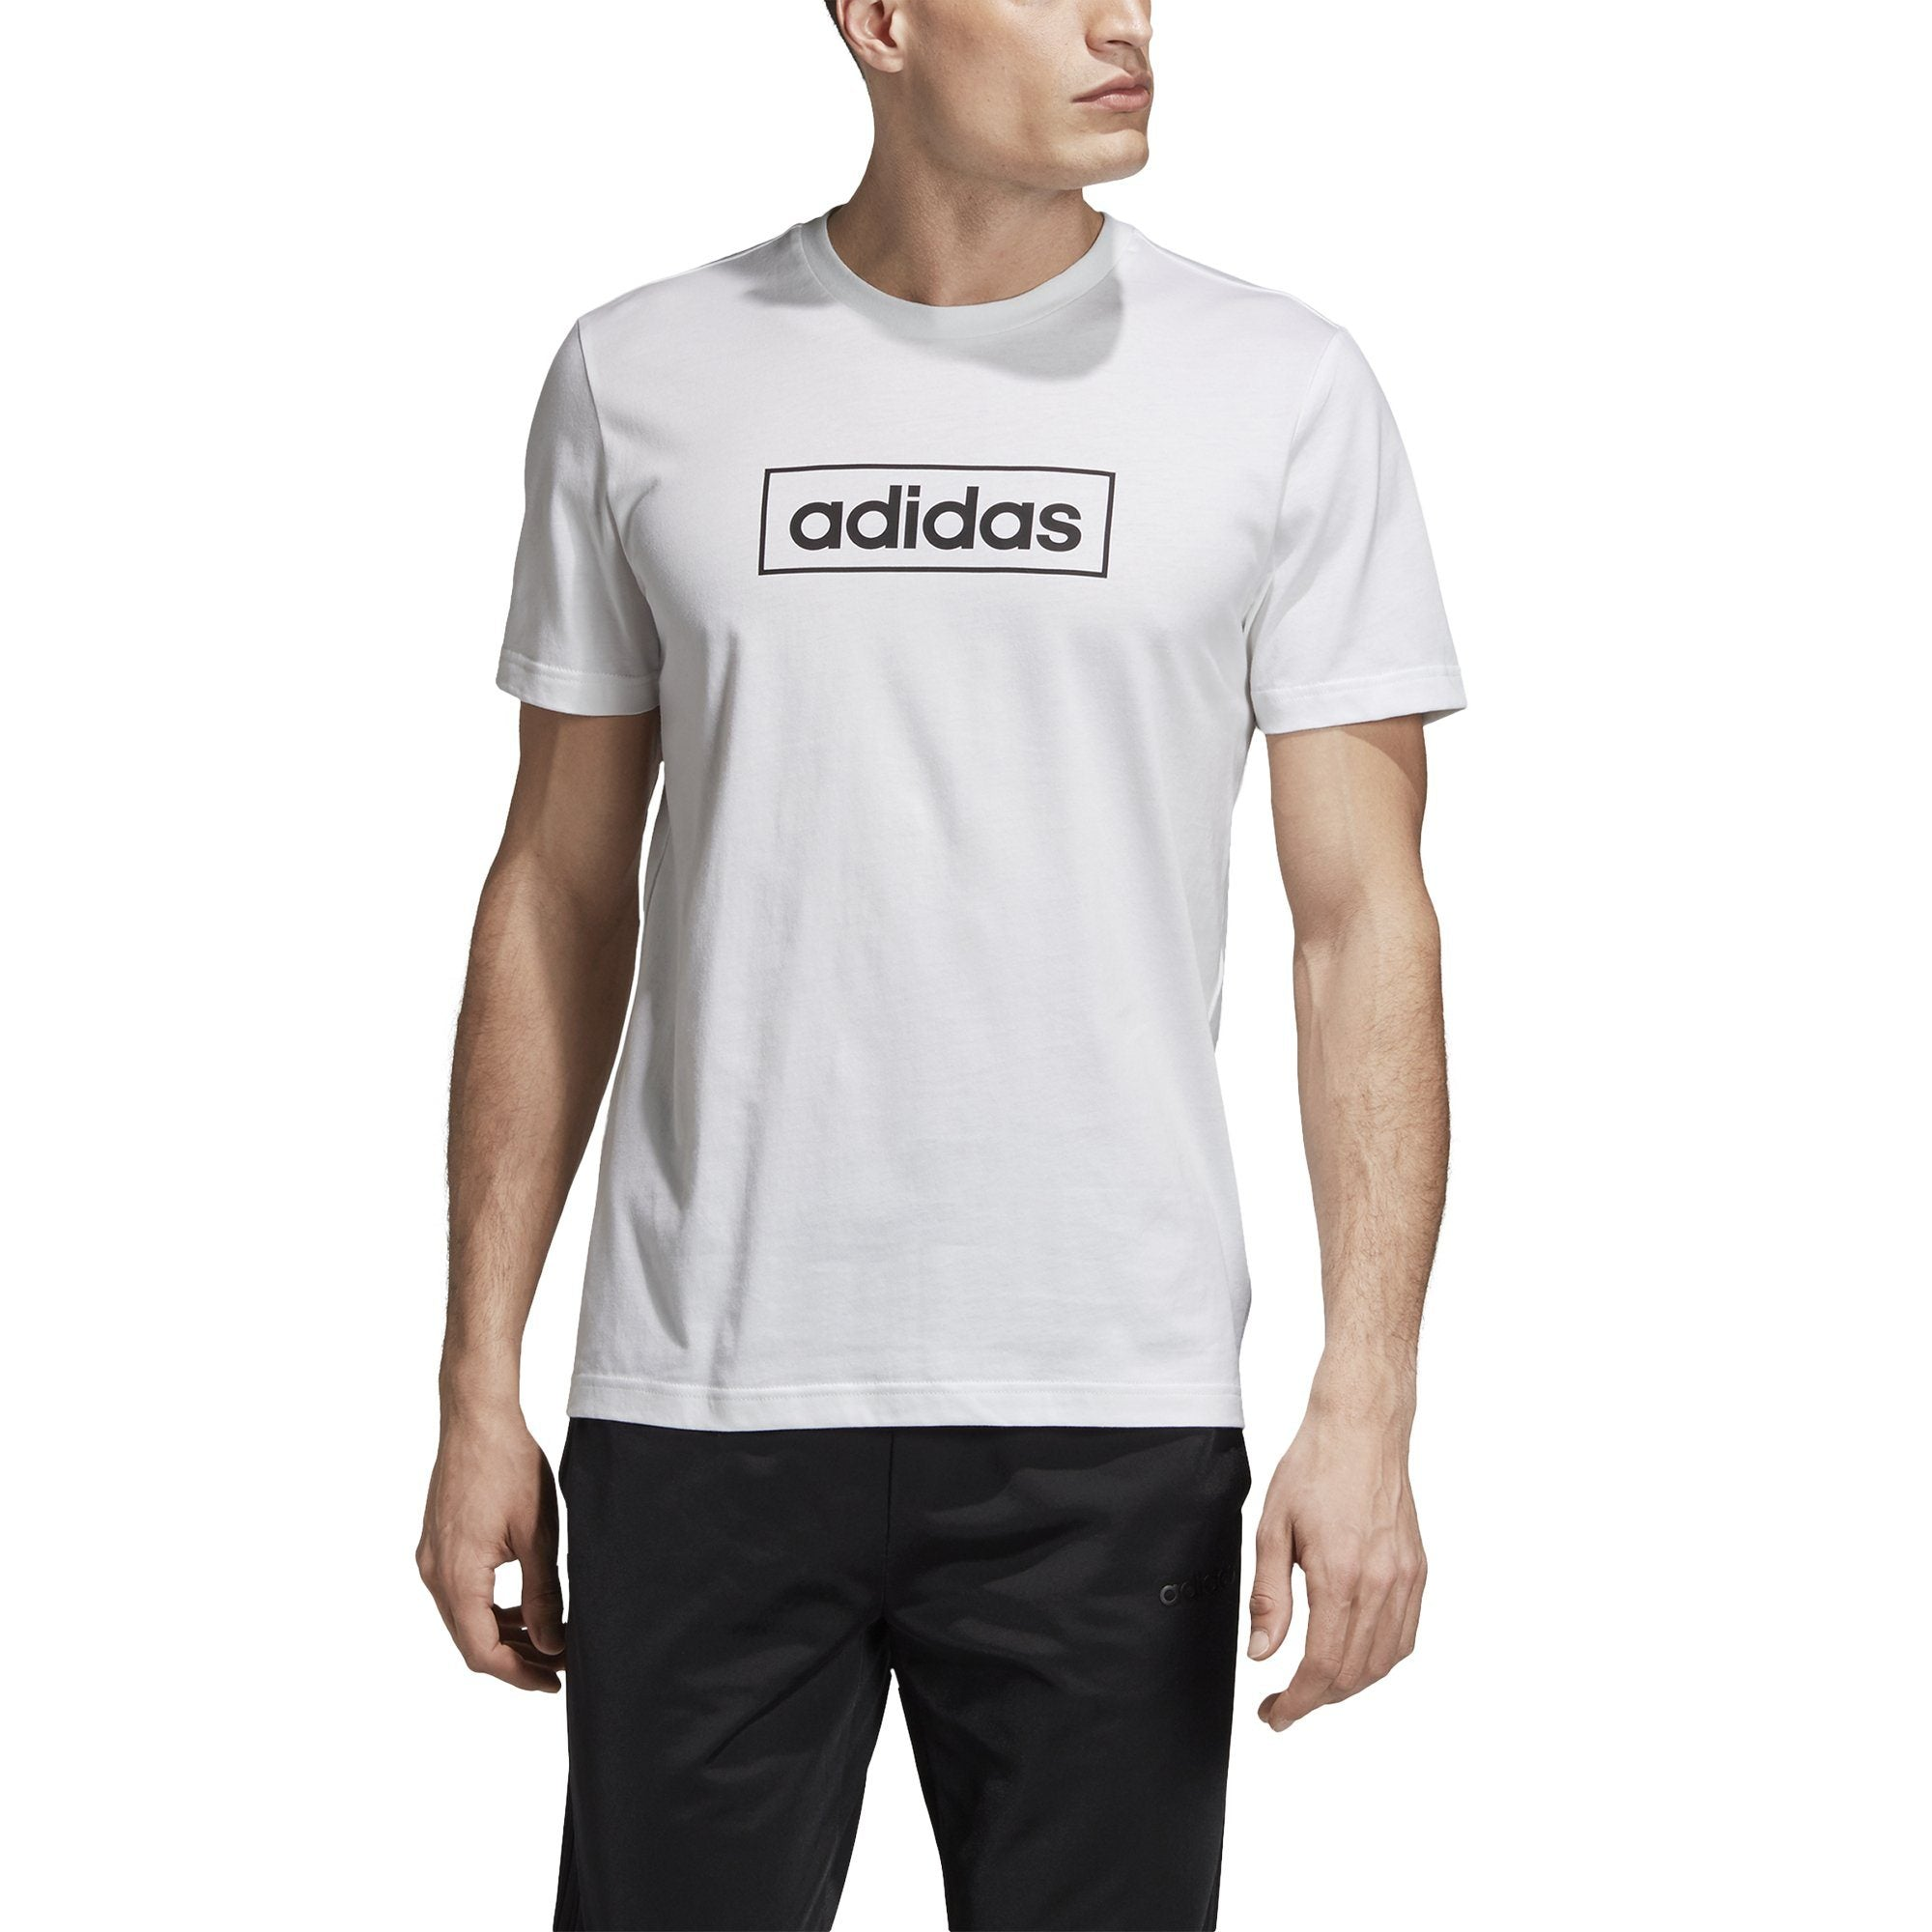 Adidas Mens Box Graphic Tee - white/black SP-APPARELTEES-MENS Adidas